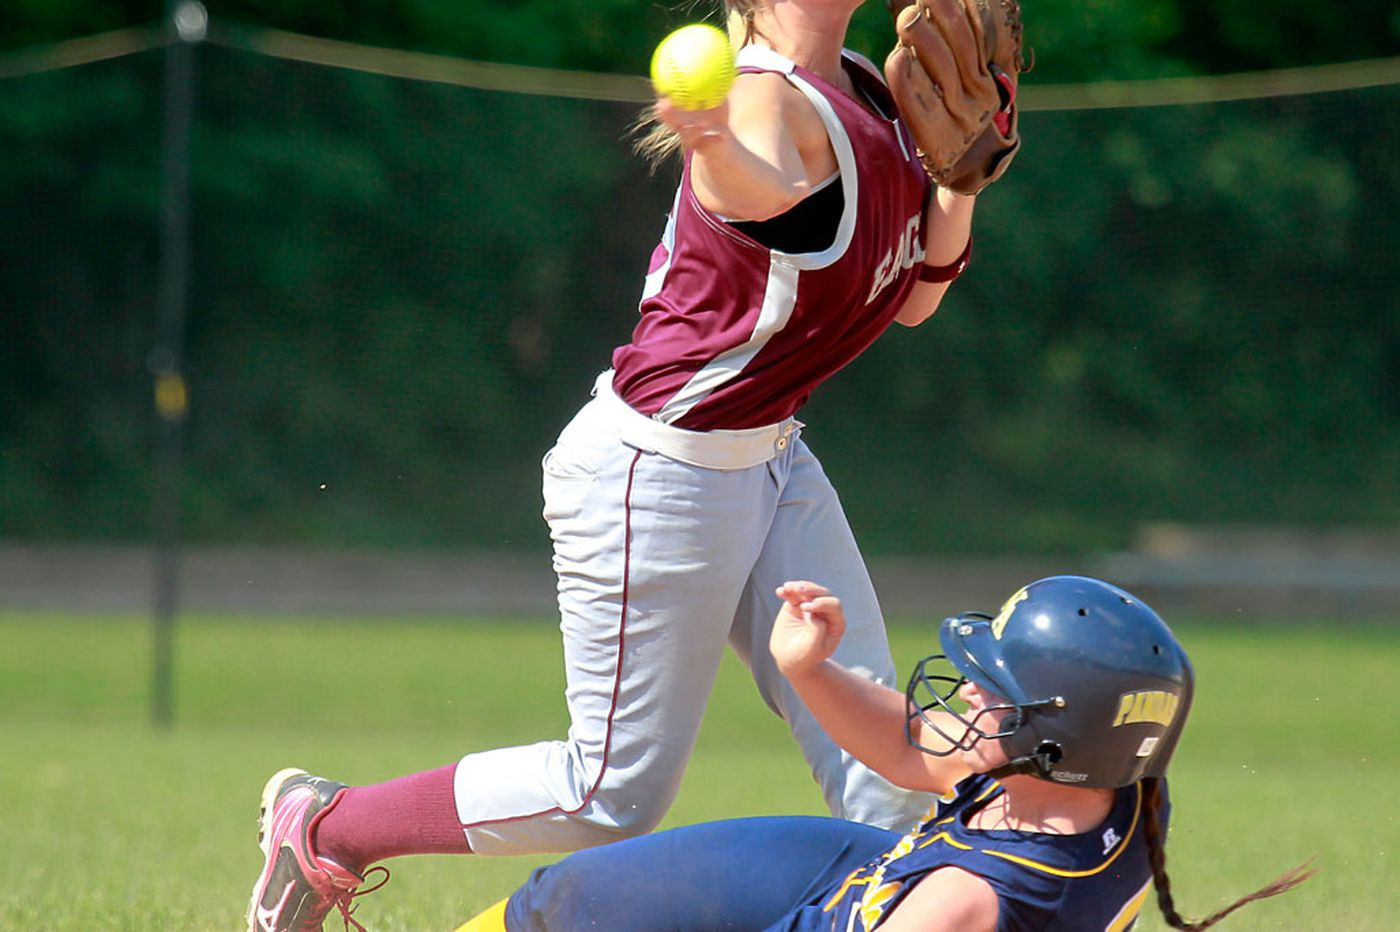 Wednesday's Southeastern Pa. roundup: Alex Mullen's walk-off homer lifts Interboro softball over Marple Newtown